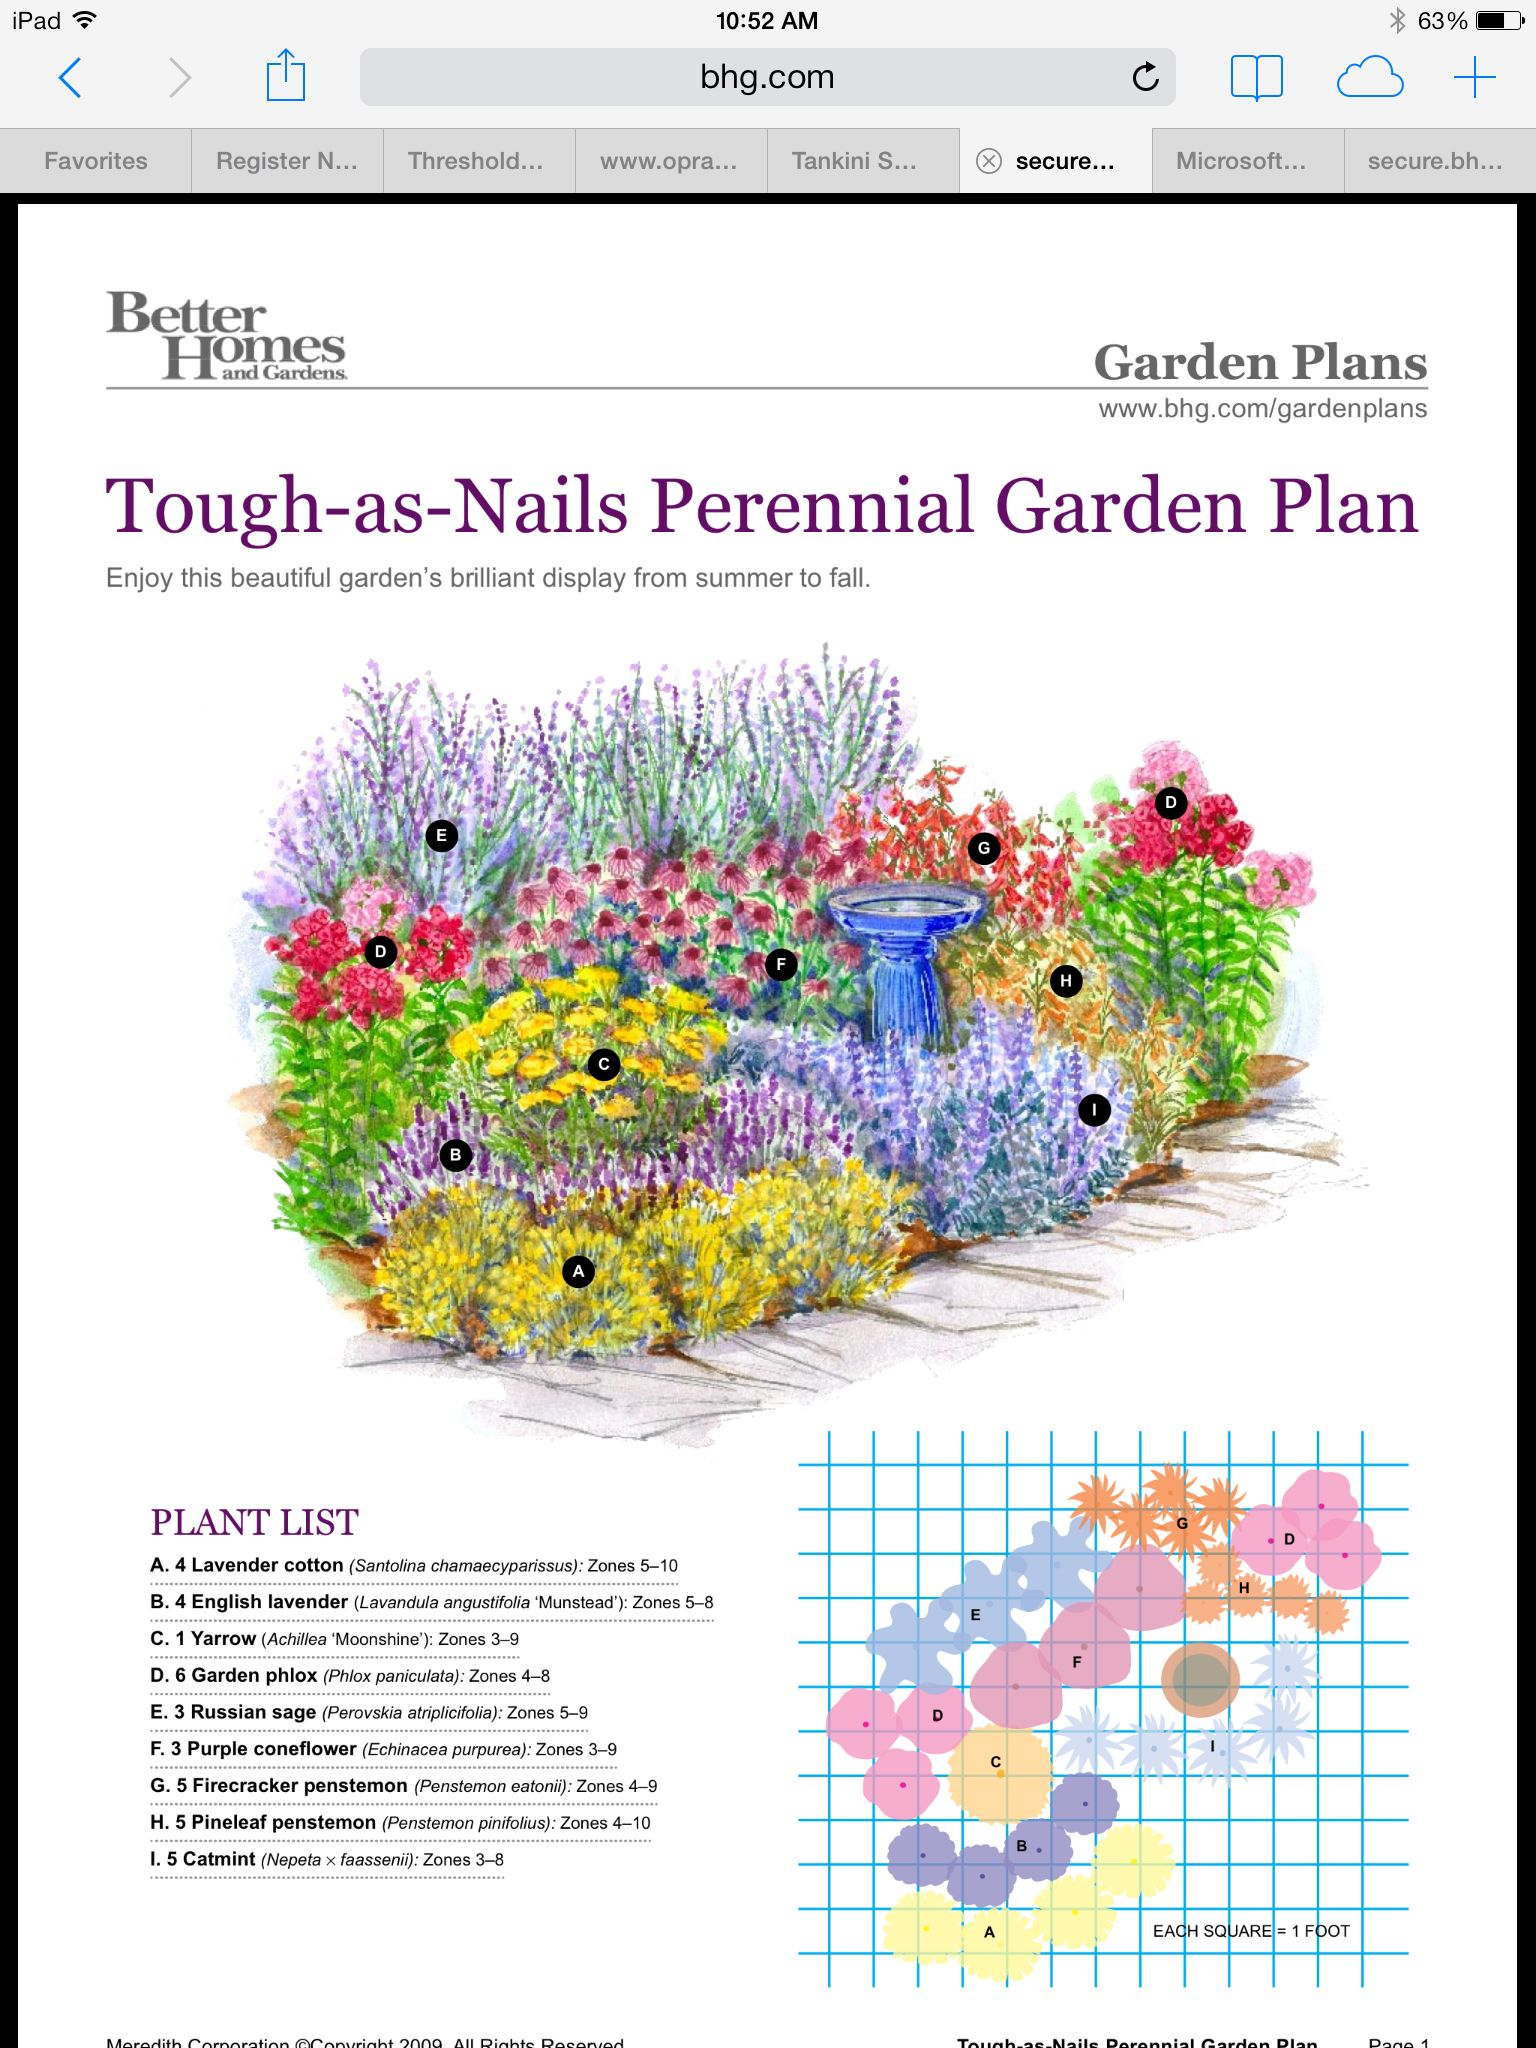 Perennial garden plans image by Lavender Brook Farm on ...